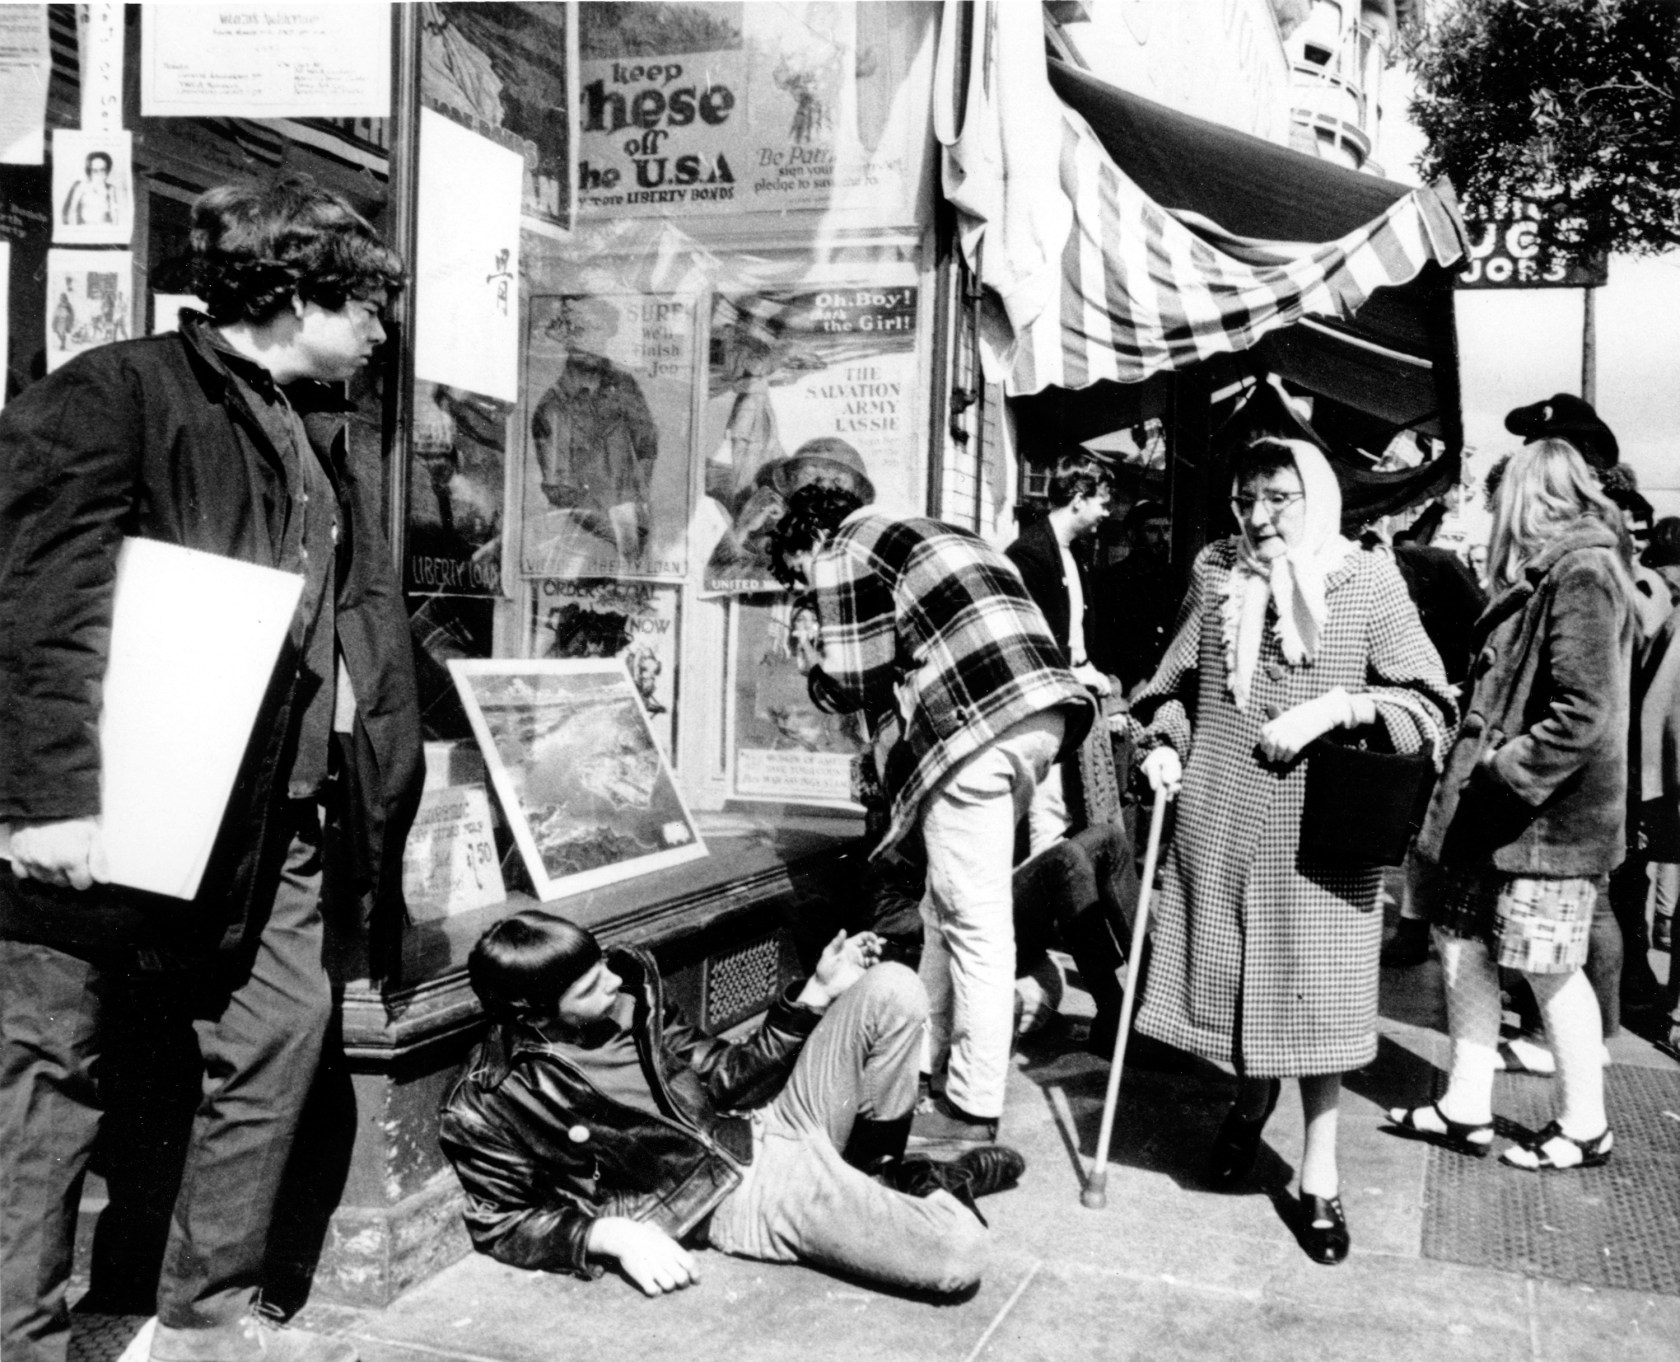 San Francisco Haight-Ashbury 1967 Summer of Love